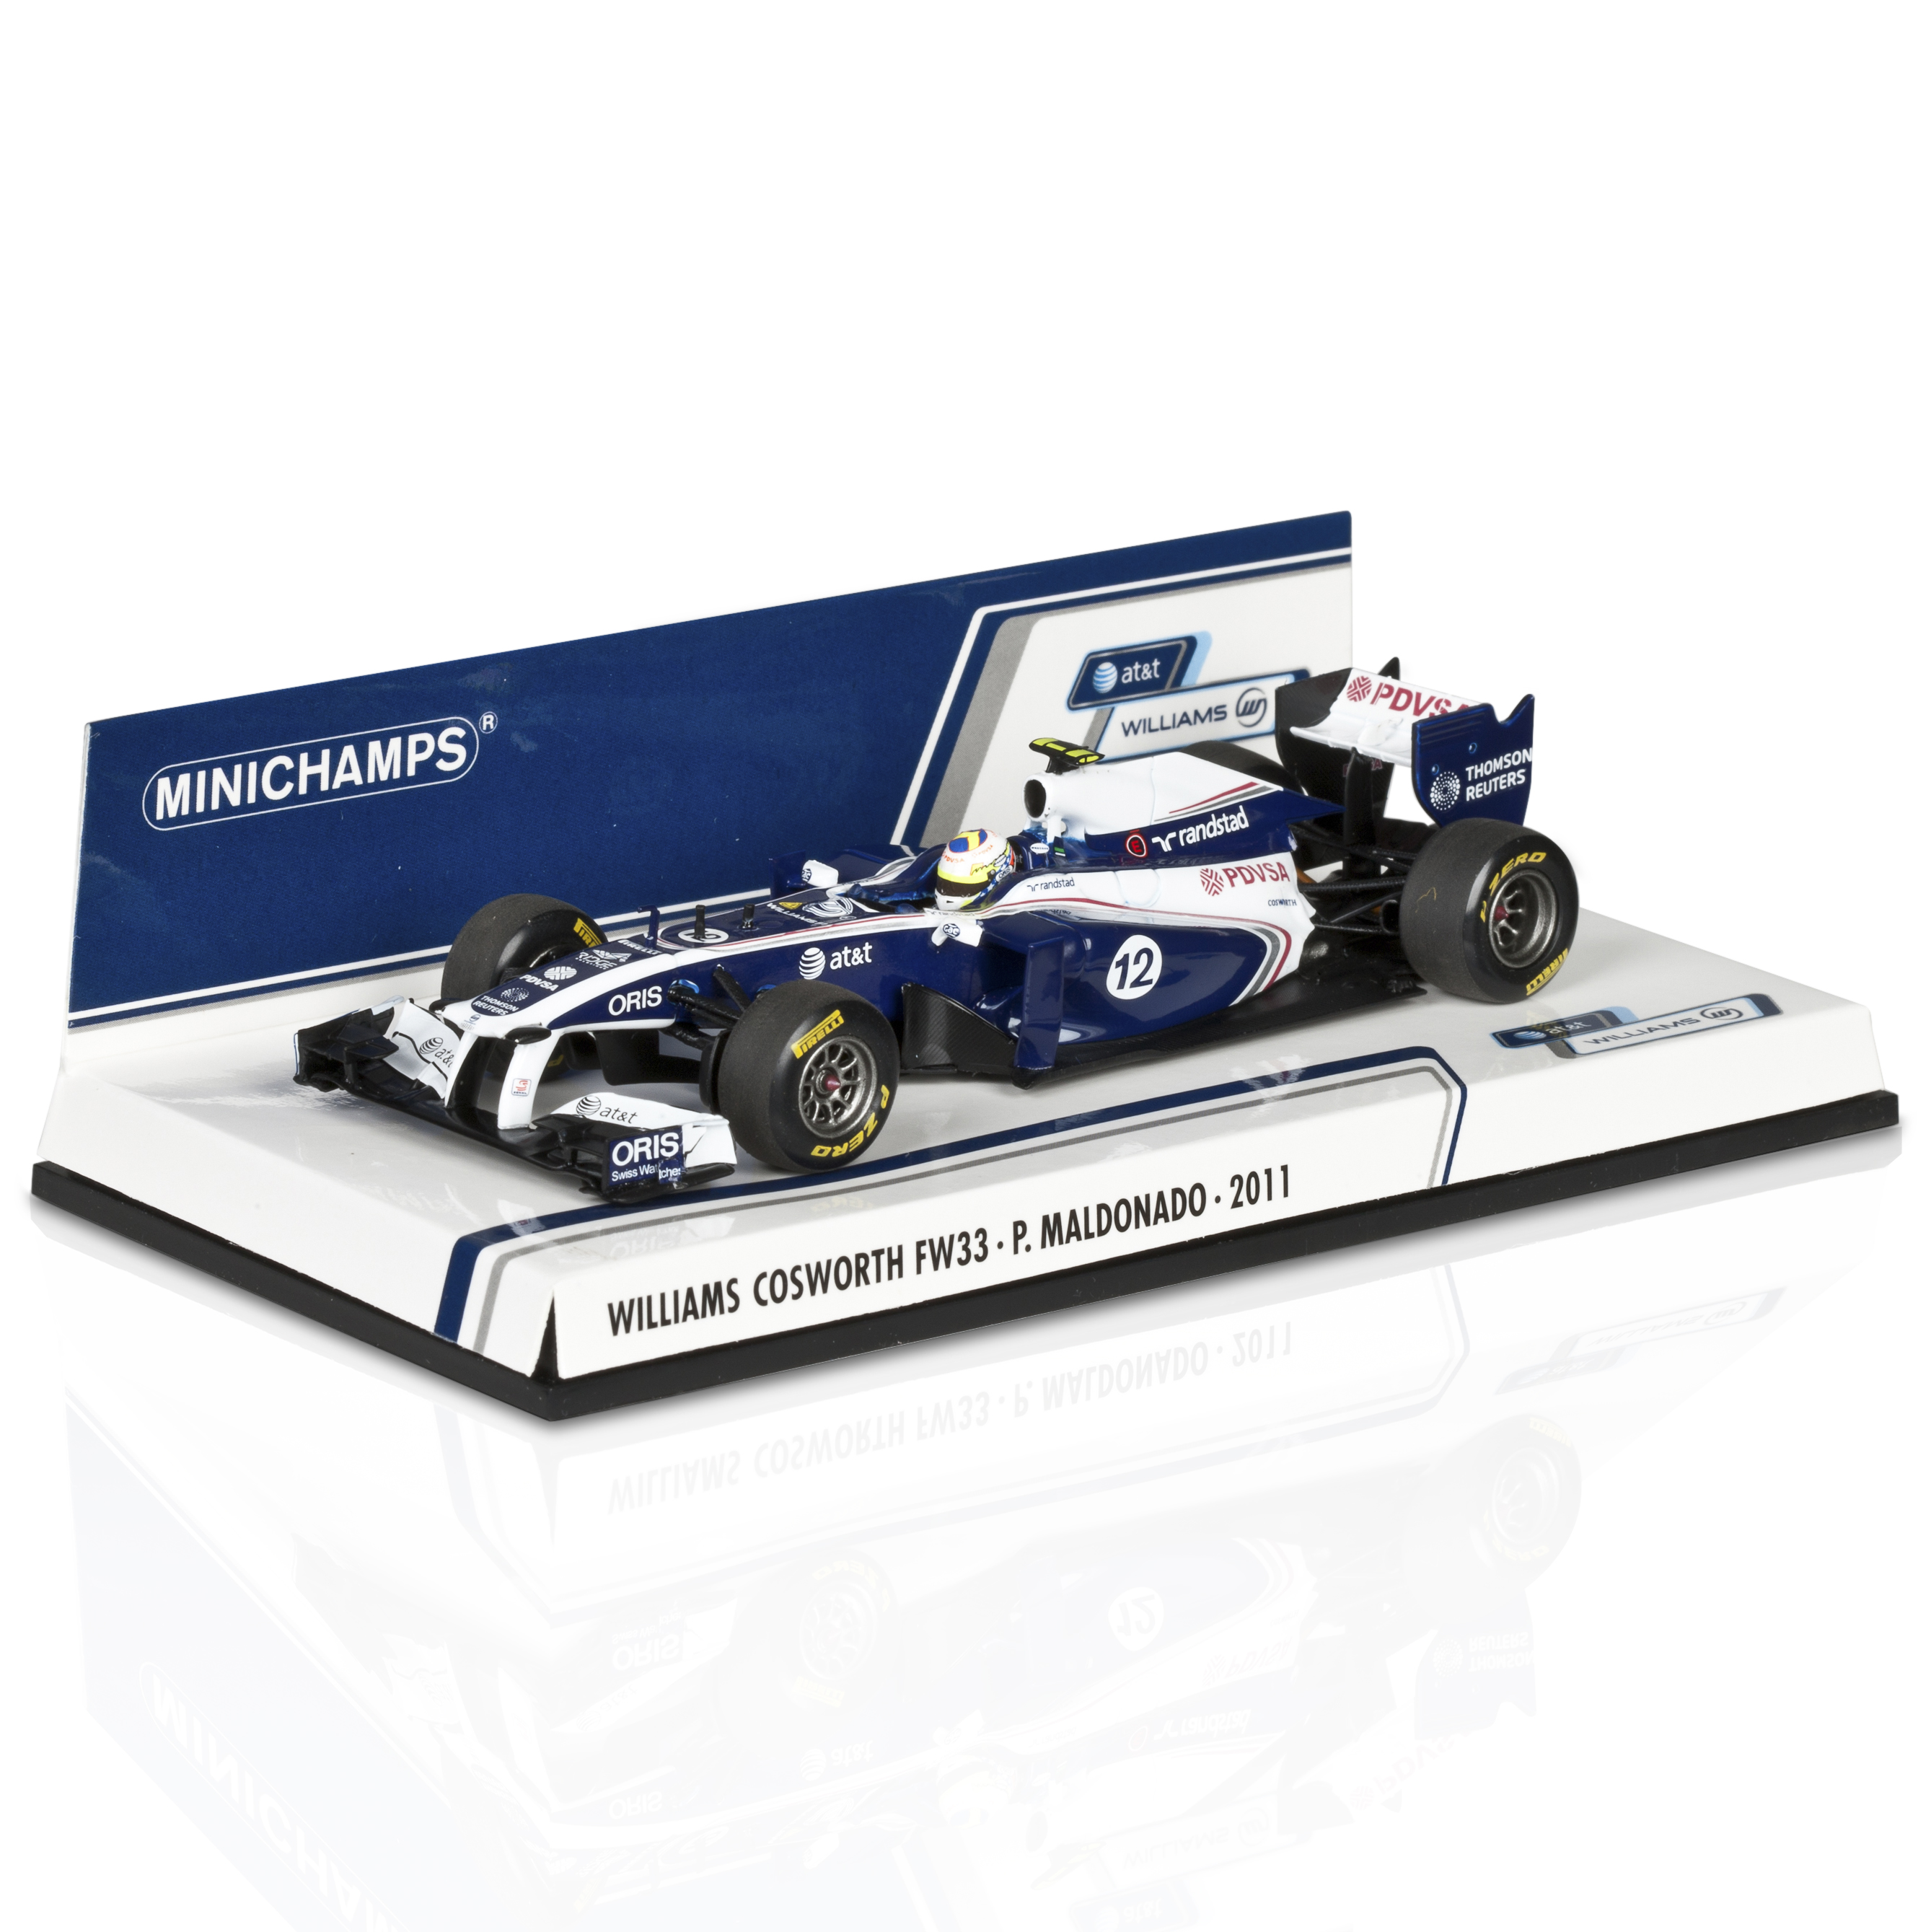 At&amp;T Williams Cosworth FW33 Pastor Maldonado 1:43 Scale